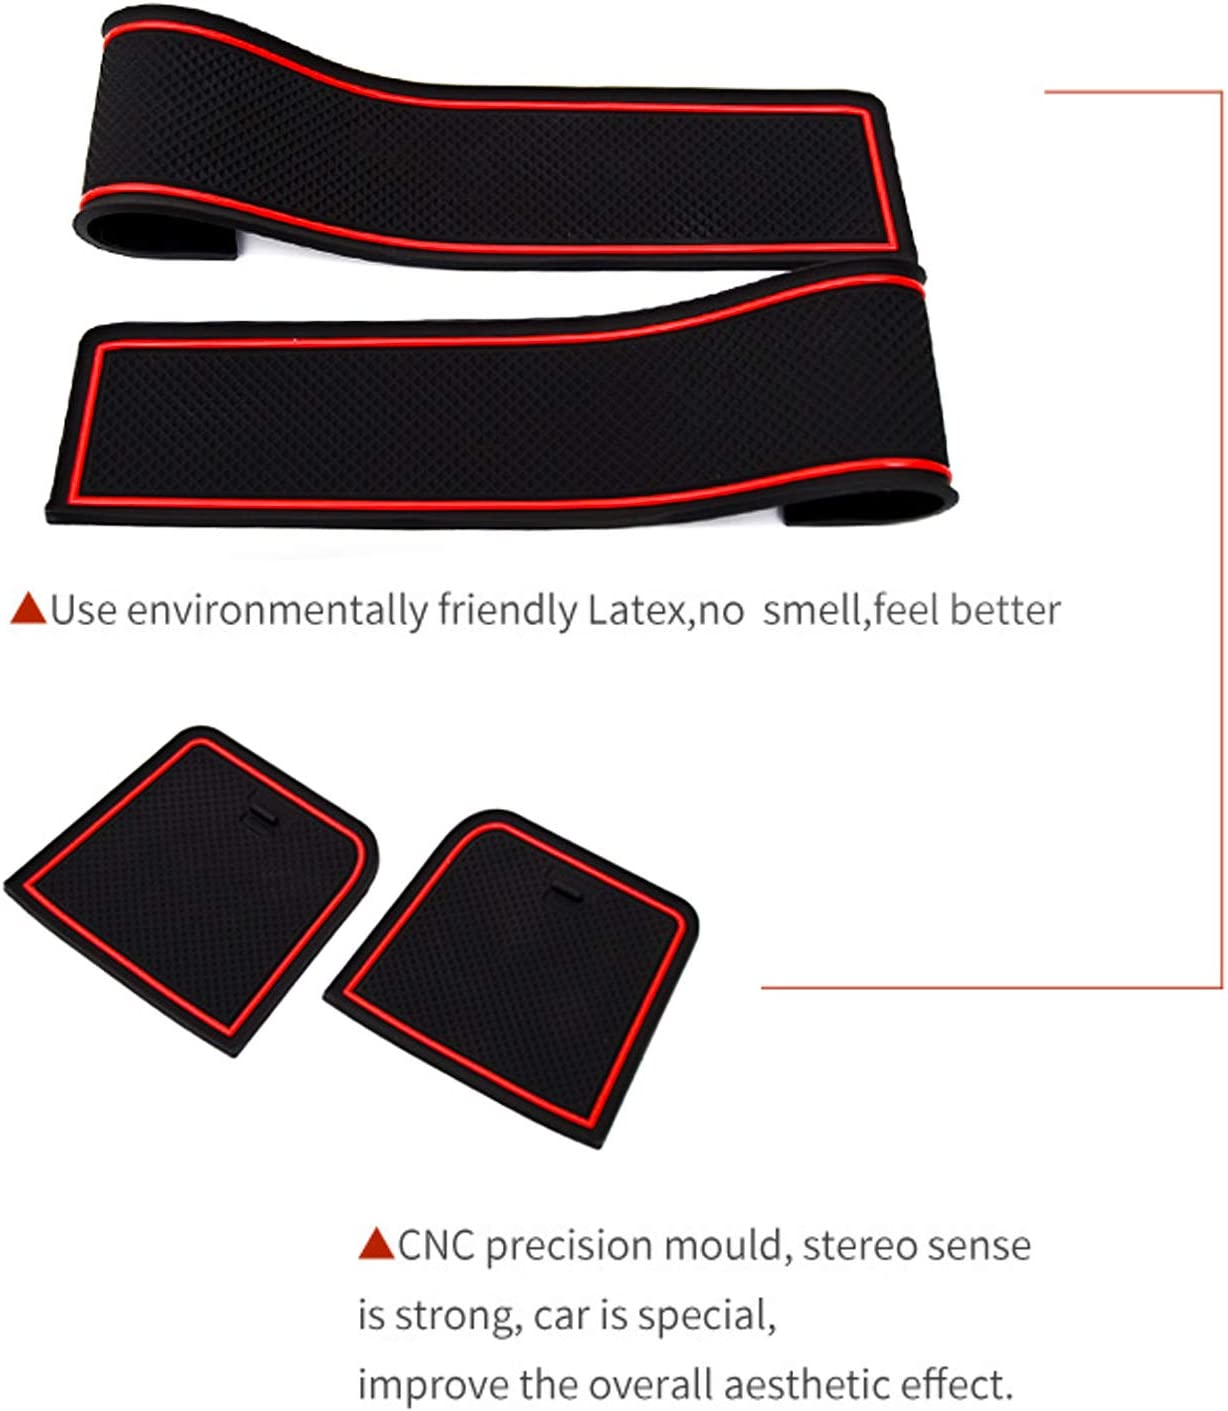 CRV Interior Accessories,Door and Center Console Groove Pad Mats for Honda CRV 2017 2018 2019 2020 Red Left-Hand Drive